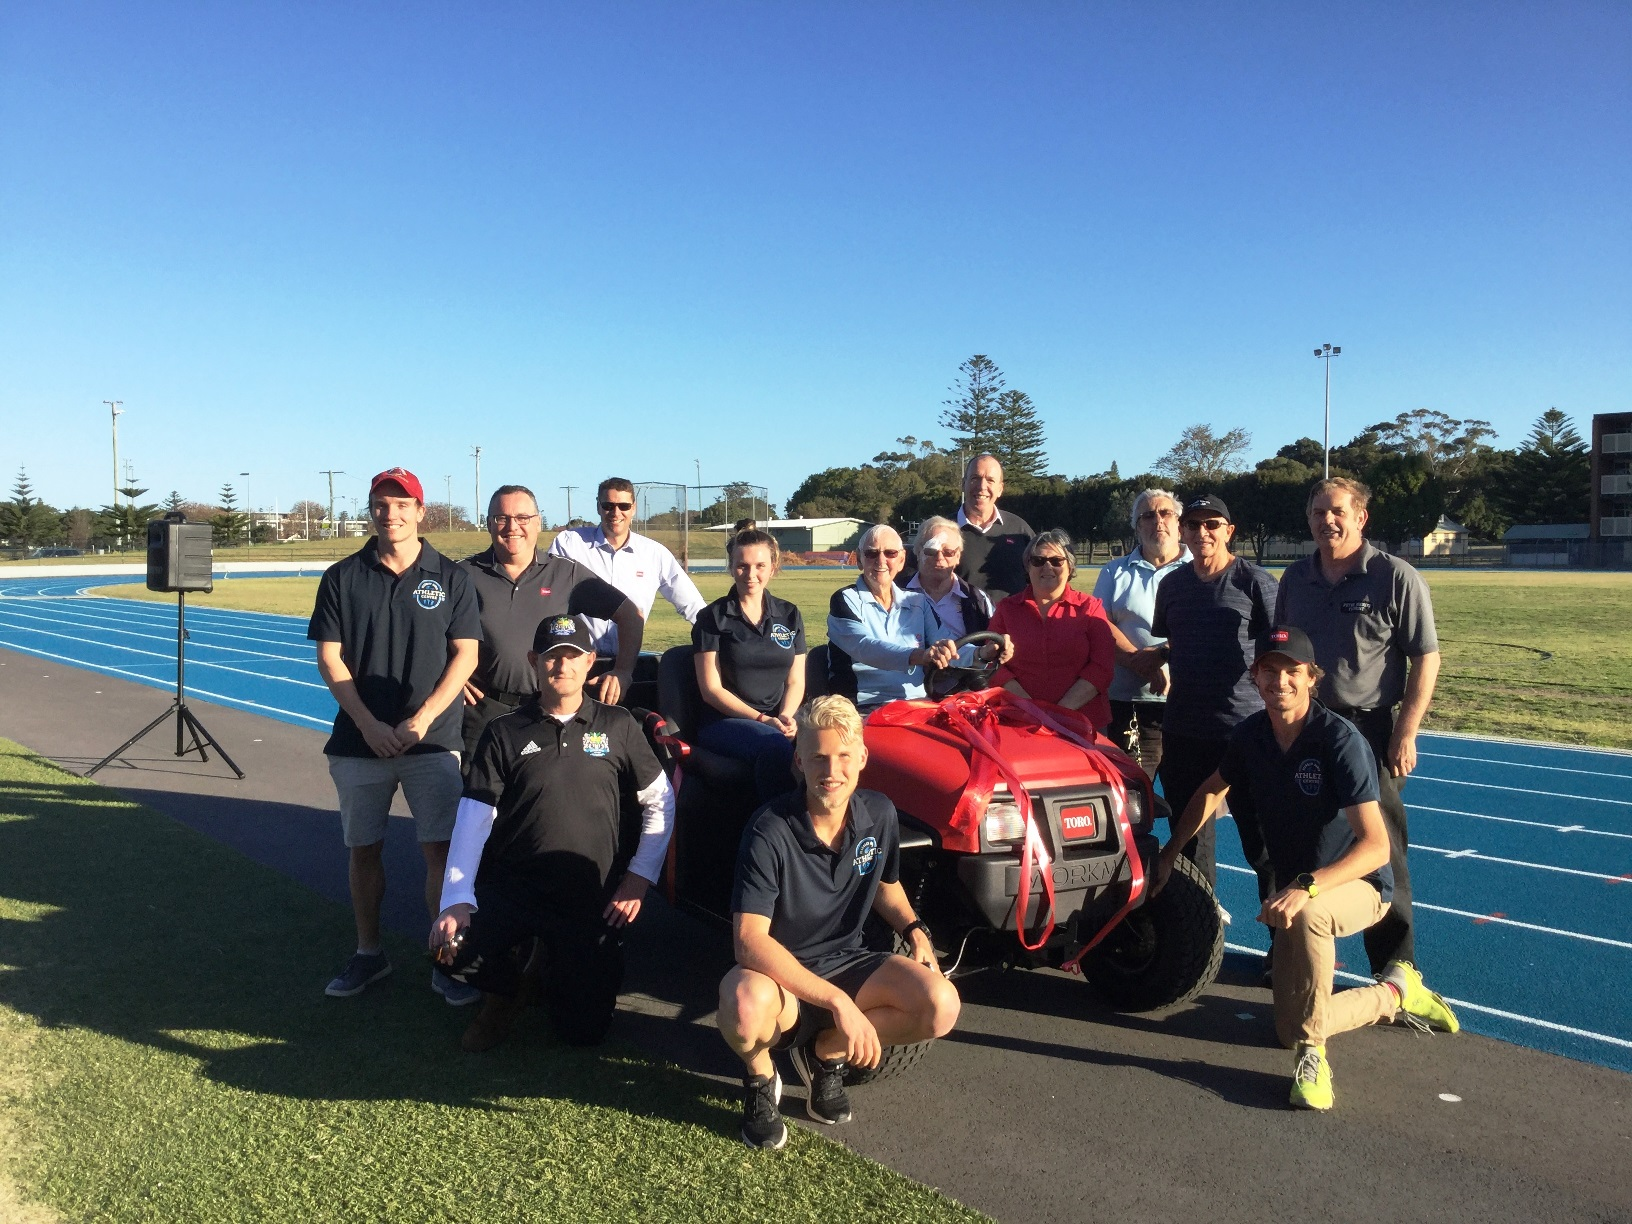 Fearnley Dawes Athletics track receives new Workman MDX from Toro Giving Program